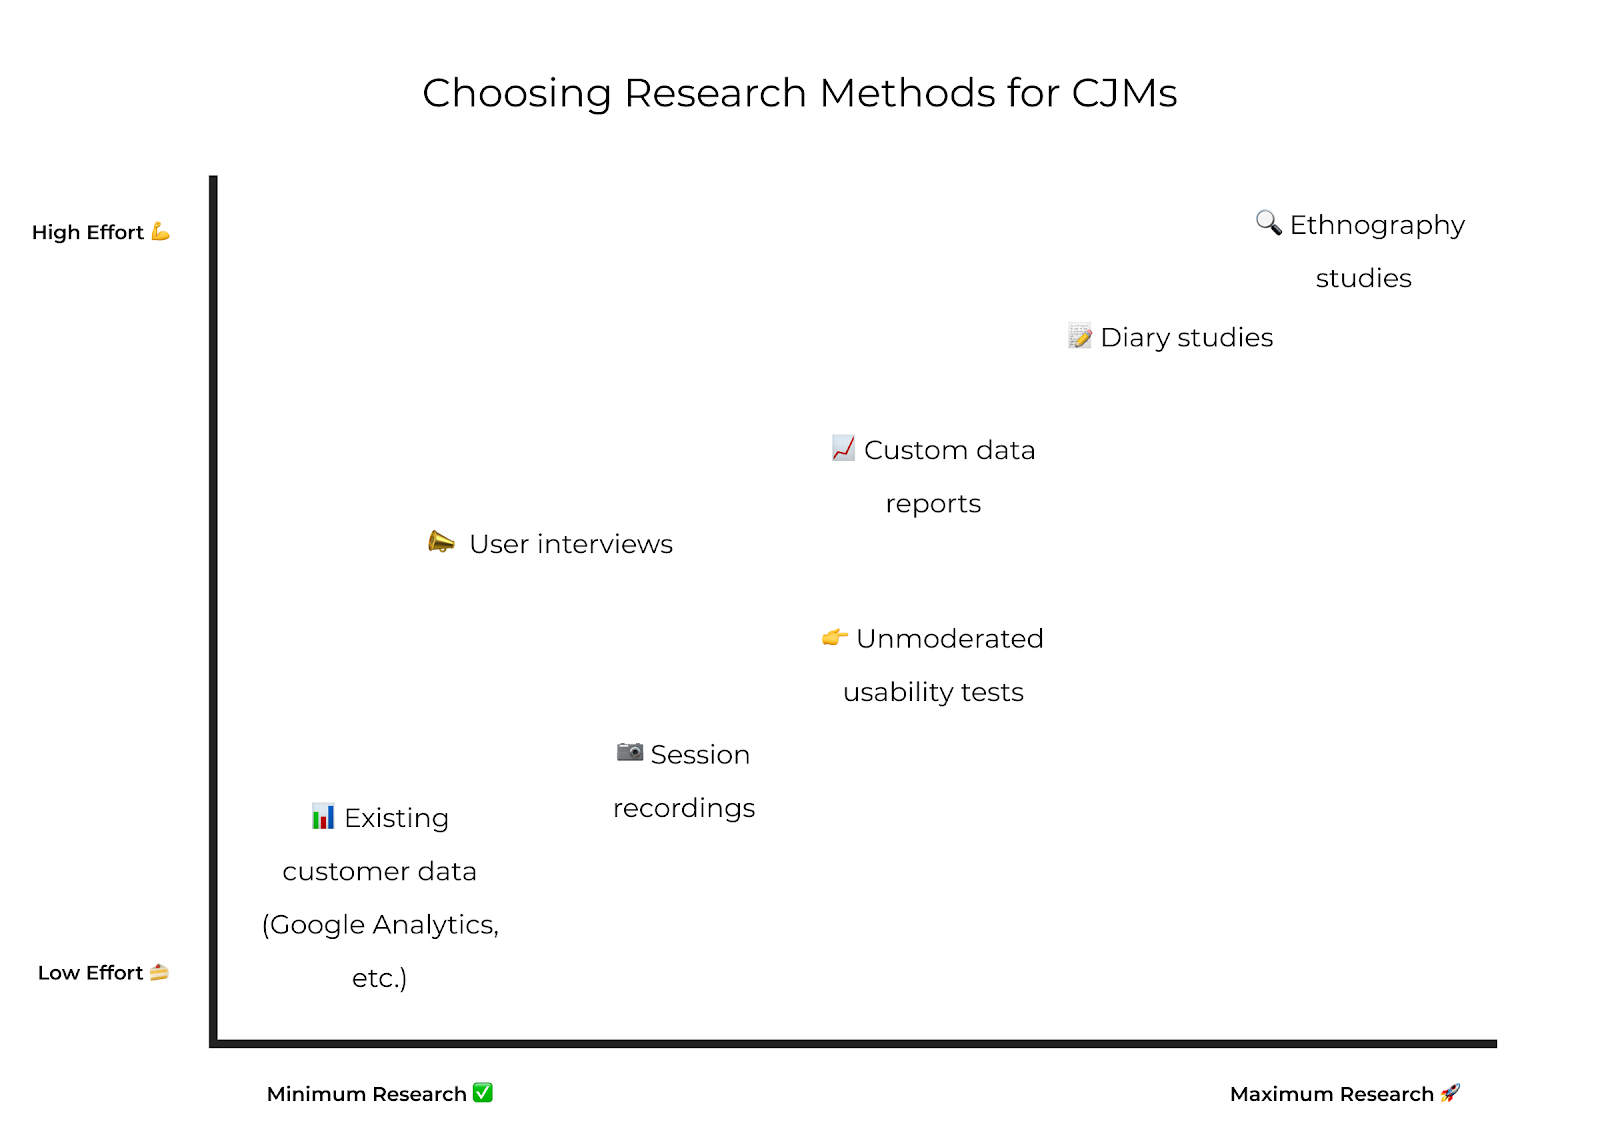 """Graph showing different research methods for customer journey maps. Methods are shown ranked from """"minimum research"""" to """"maximum research"""". Methods are, in order: existing customer data (ex. Google Analytics), user interviews, session recordings, unmoderated usability tests, custom data reports, diary studies, and ethnography studies."""